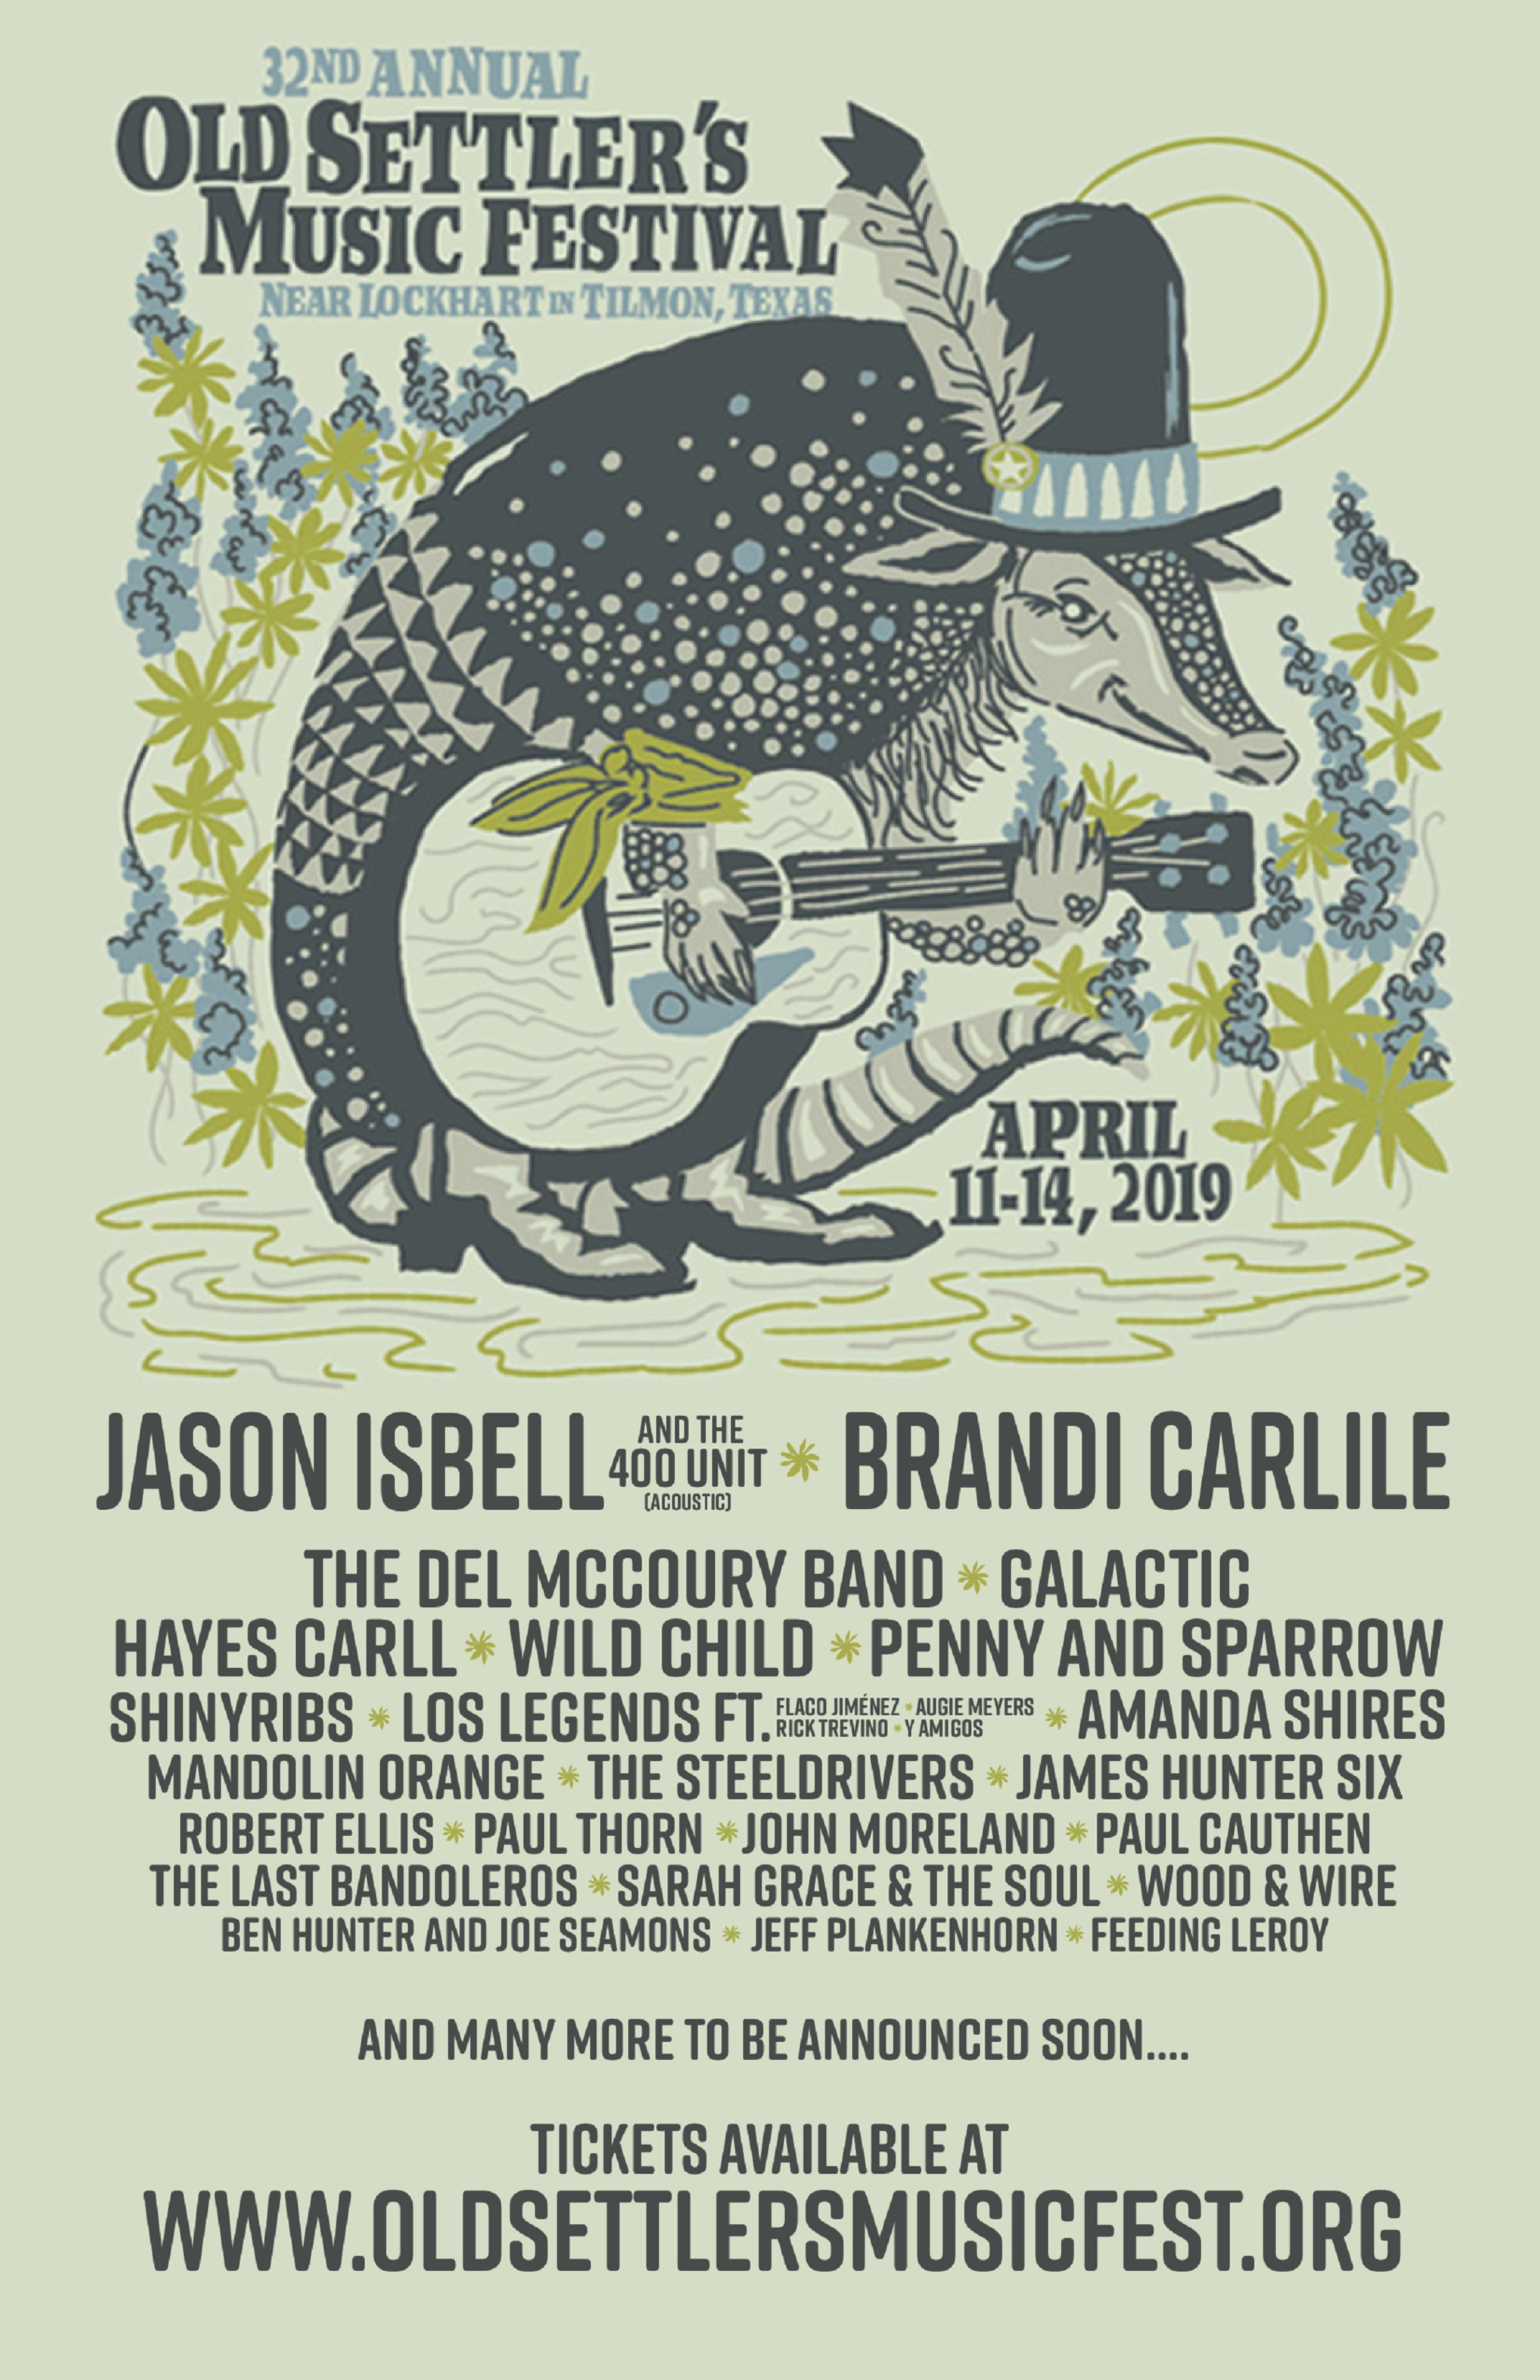 Jason Isbell And The 400 Unit And Brandi Carlile To Headline The 2019 Old Settler's Music Festival